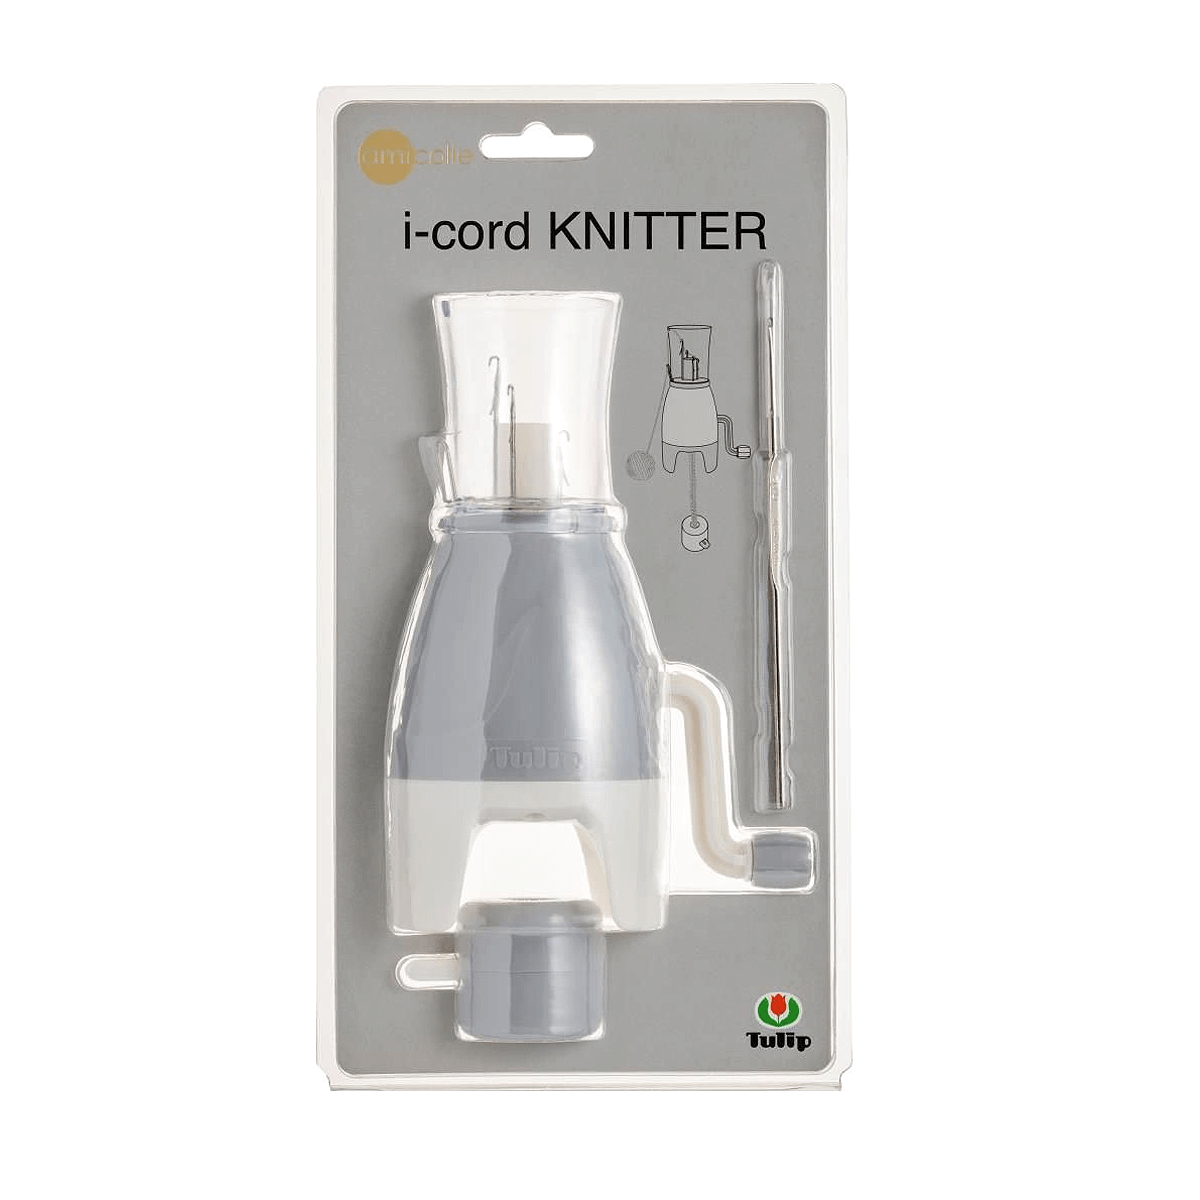 Tulip i-cord Knitter shown in it's packaging